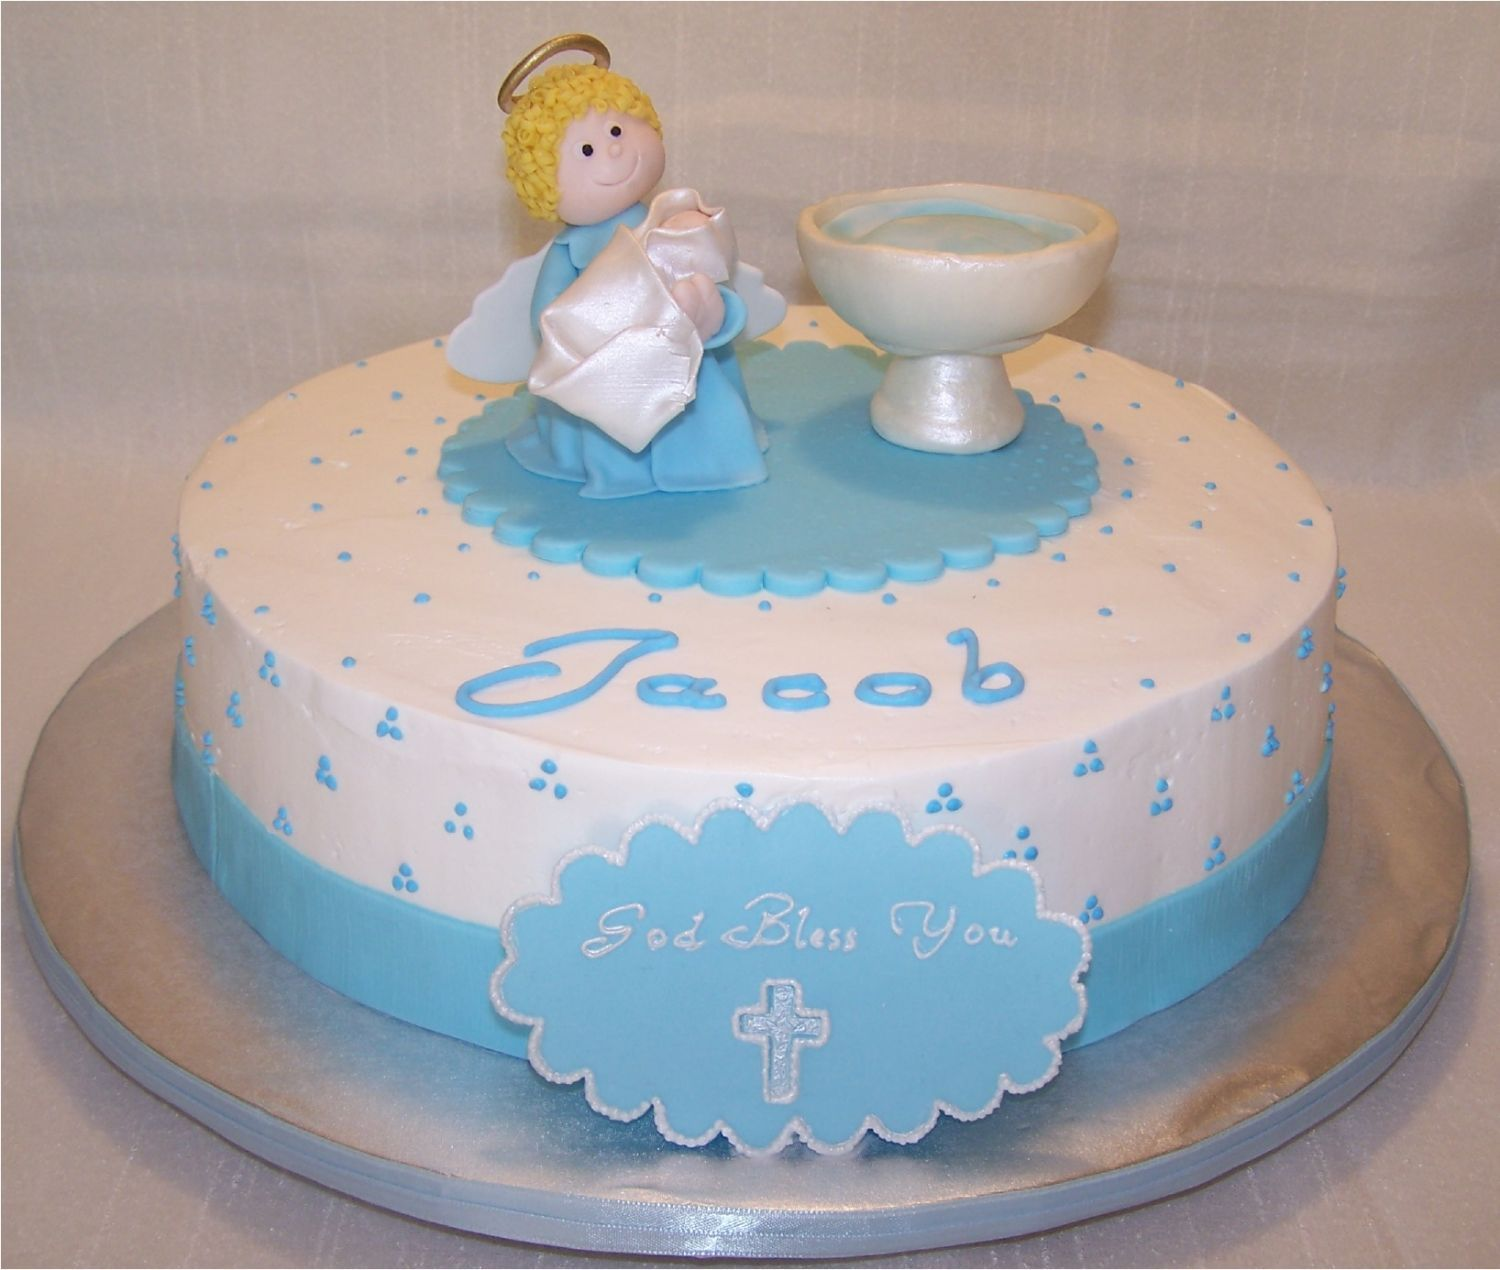 Cake Design For Christening : Baptism Cake - Vanilla cake with strawberries and custard ...